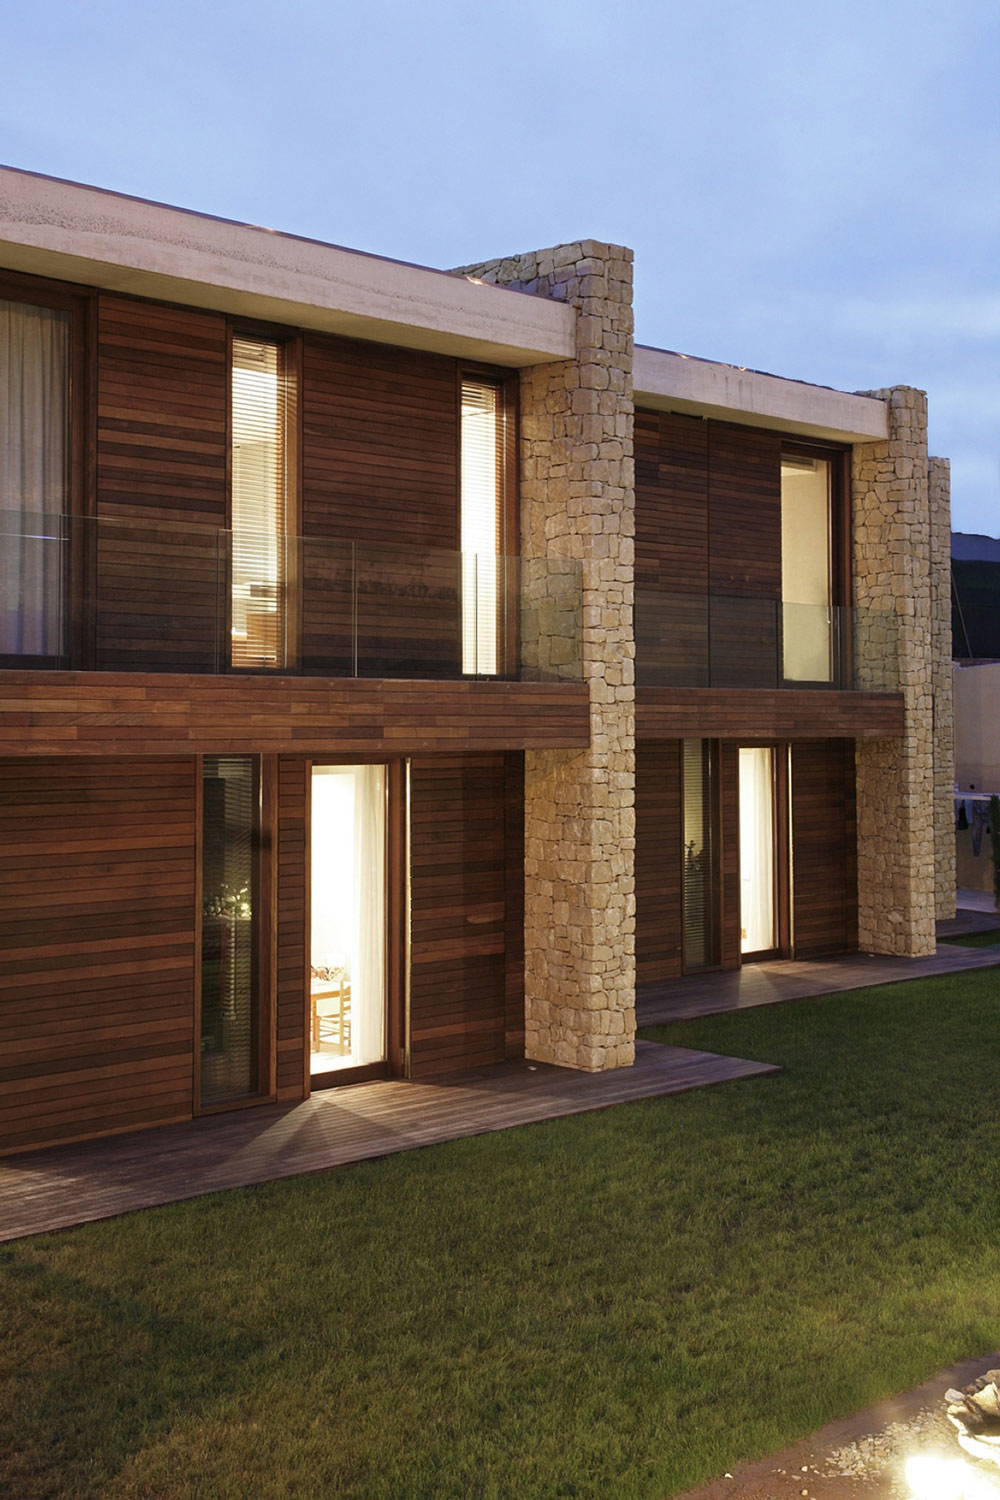 Wood & Stone Facade, Contemporary Home in Monasterios, Spain